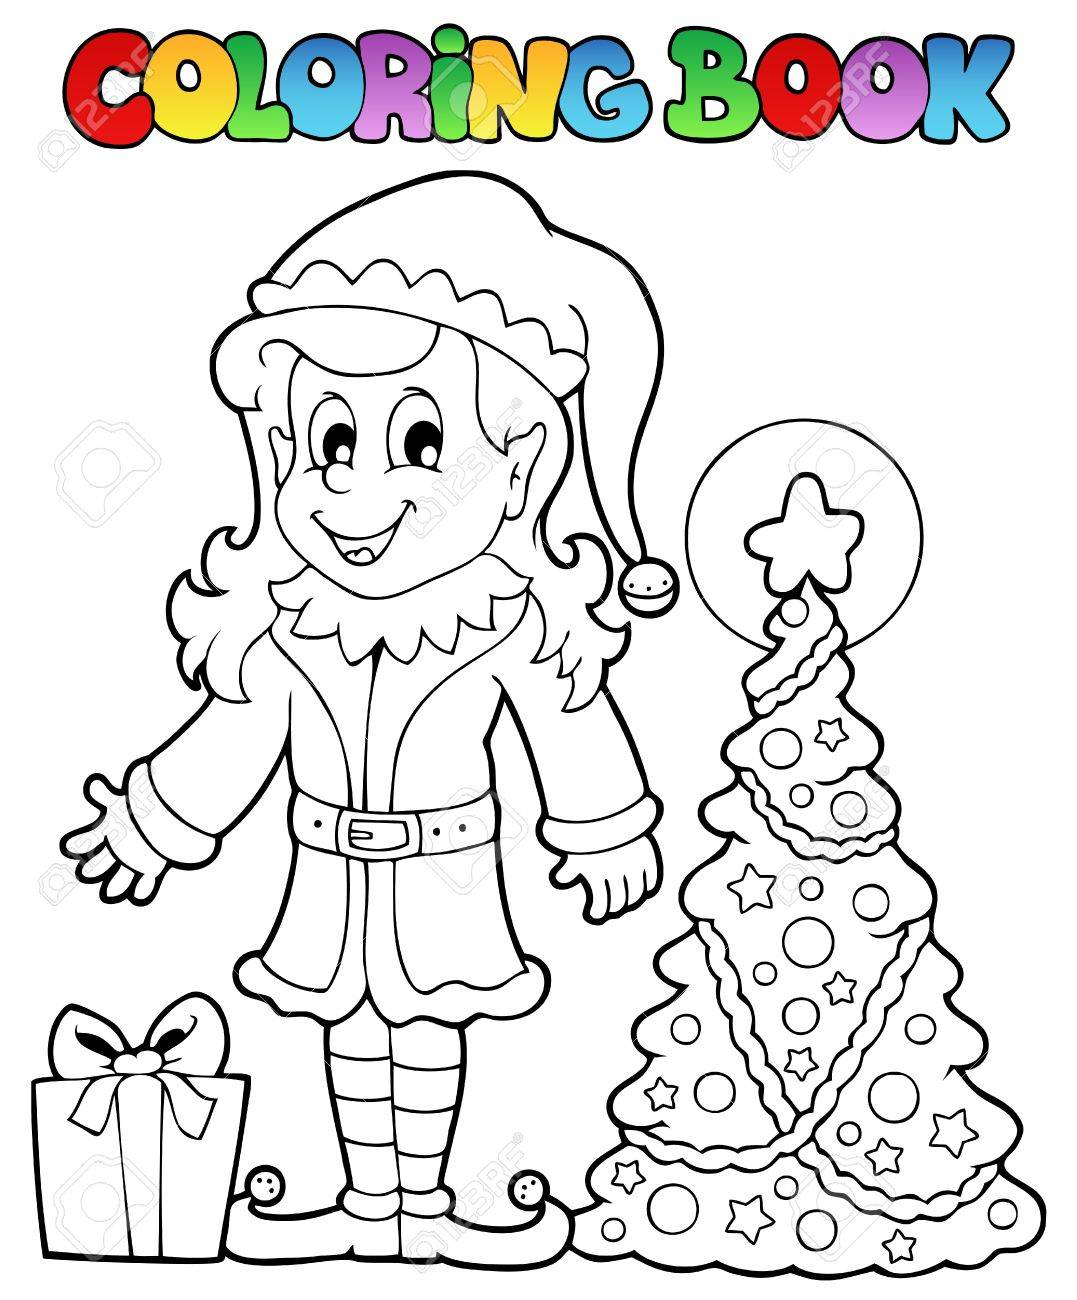 Coloring Book Christmas Elf Theme Illustration Royalty Free Cliparts ...